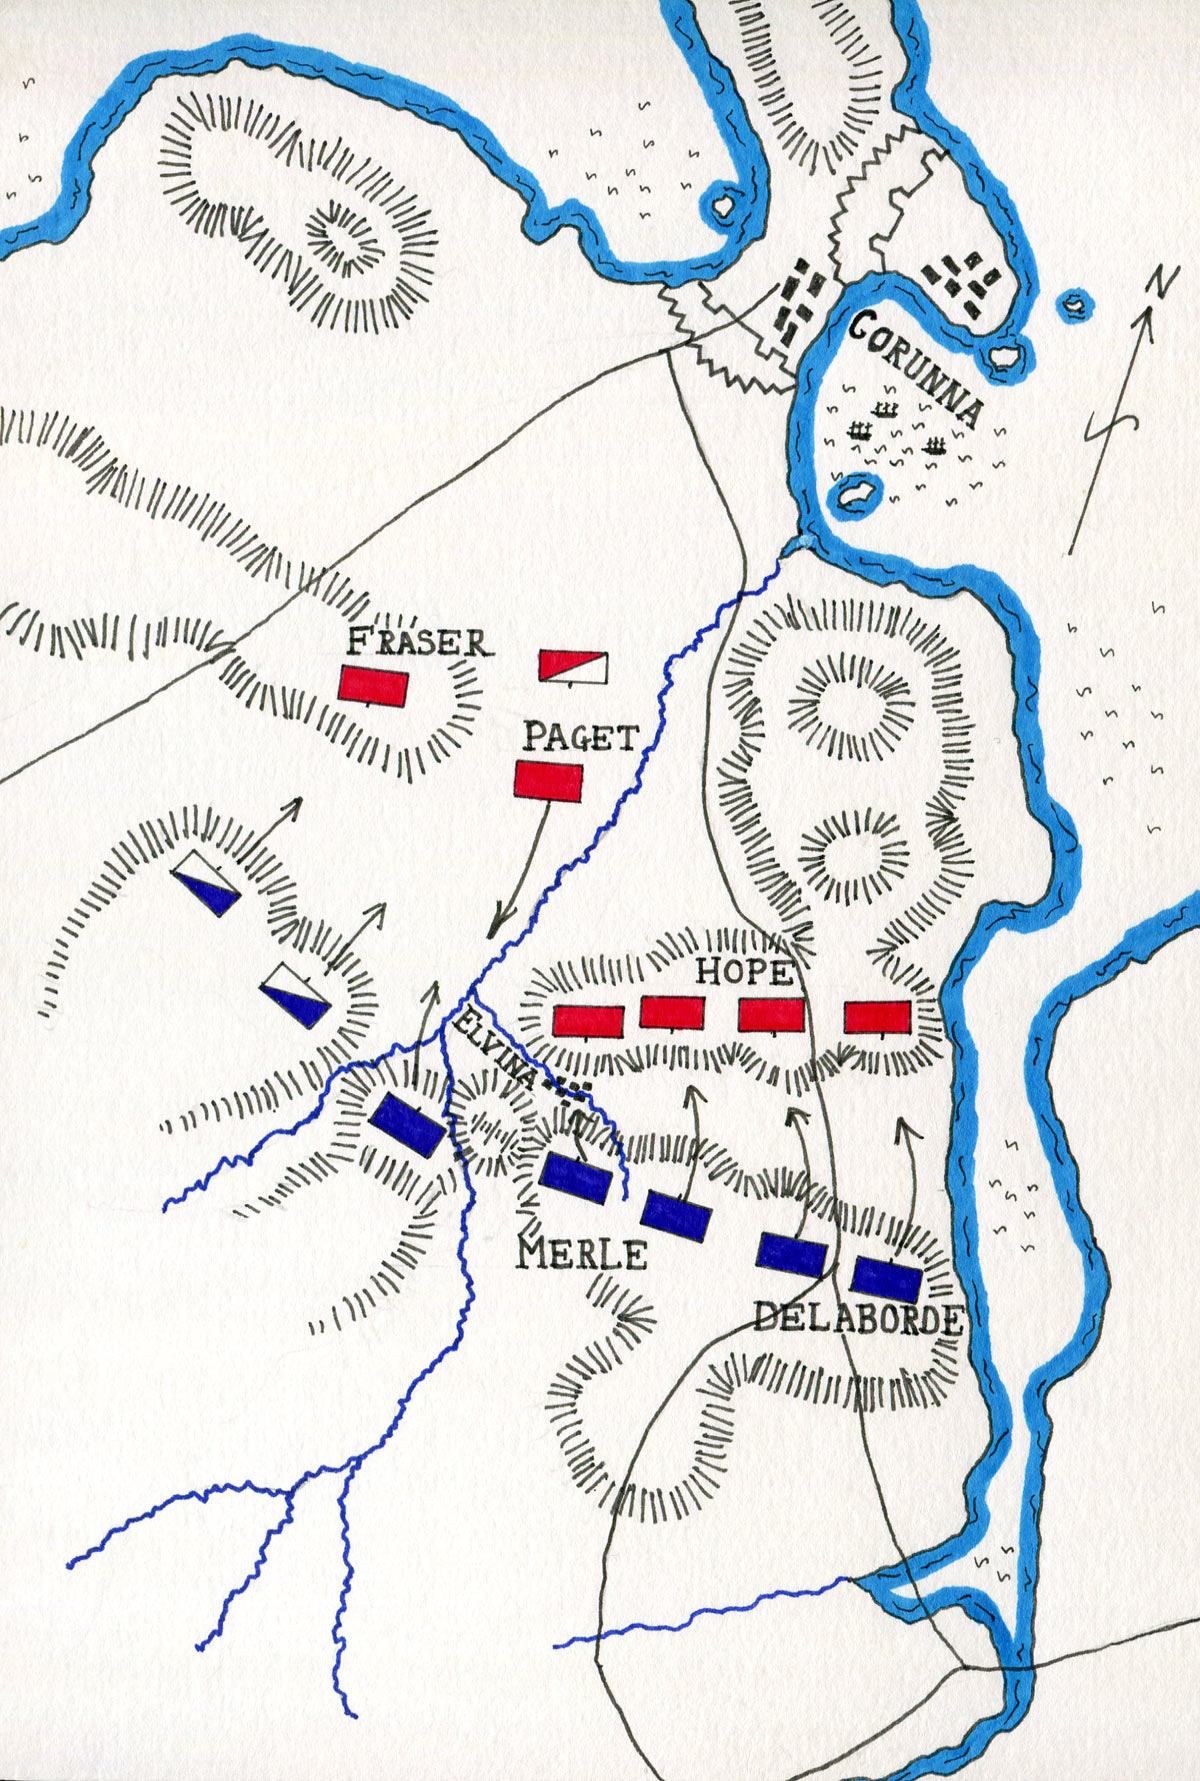 Map of the Battle of Corunna on 16th January 1809 in the Peninsular War: map by John Fawkes